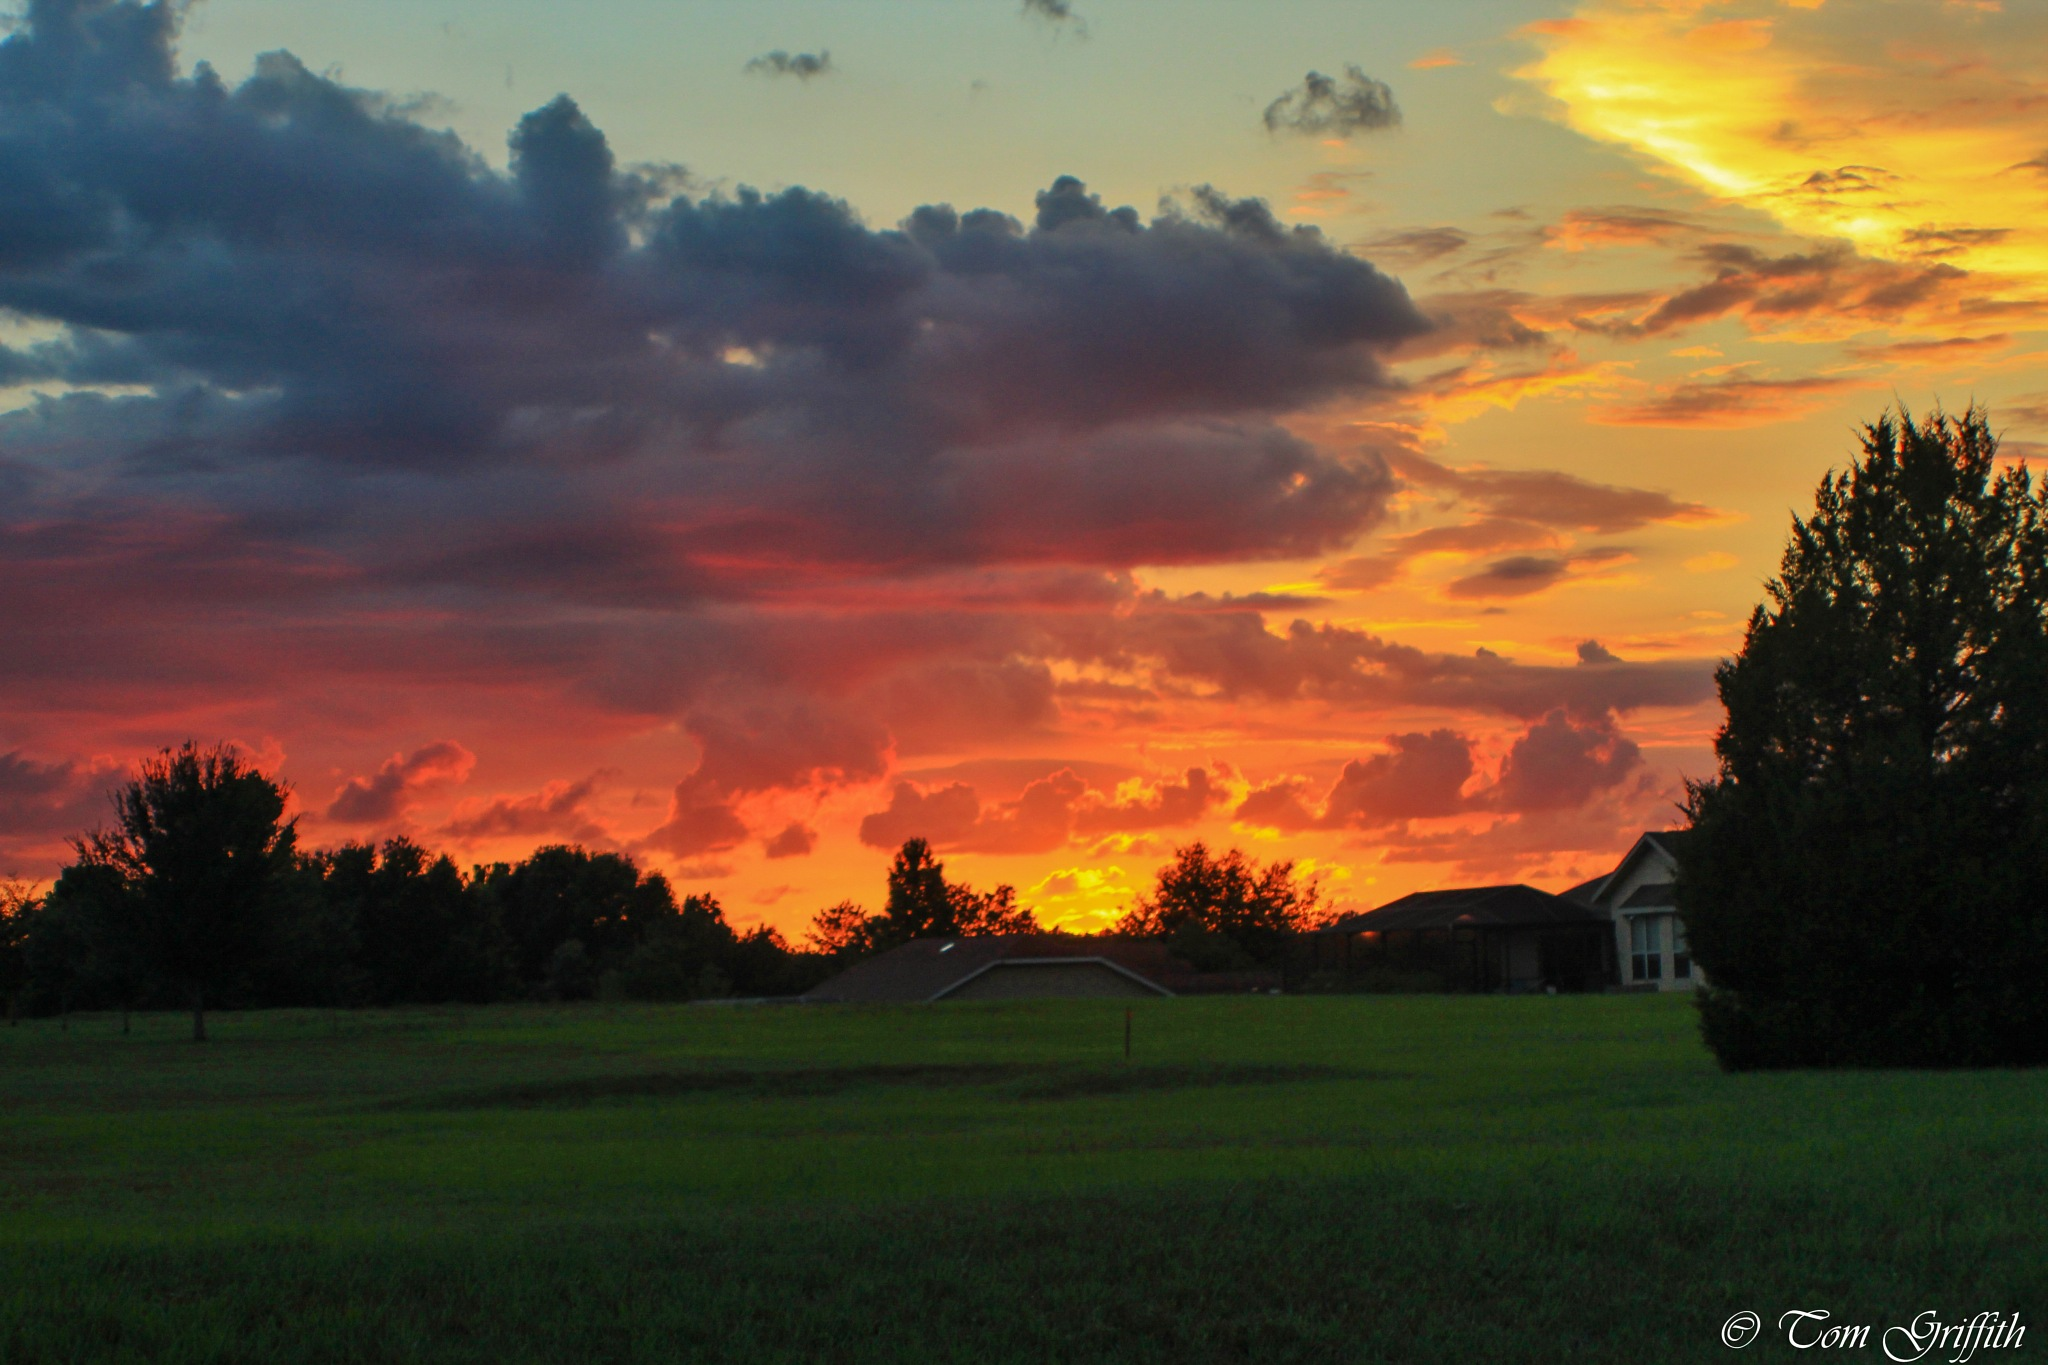 Fire In The Sky by Tom Griffith